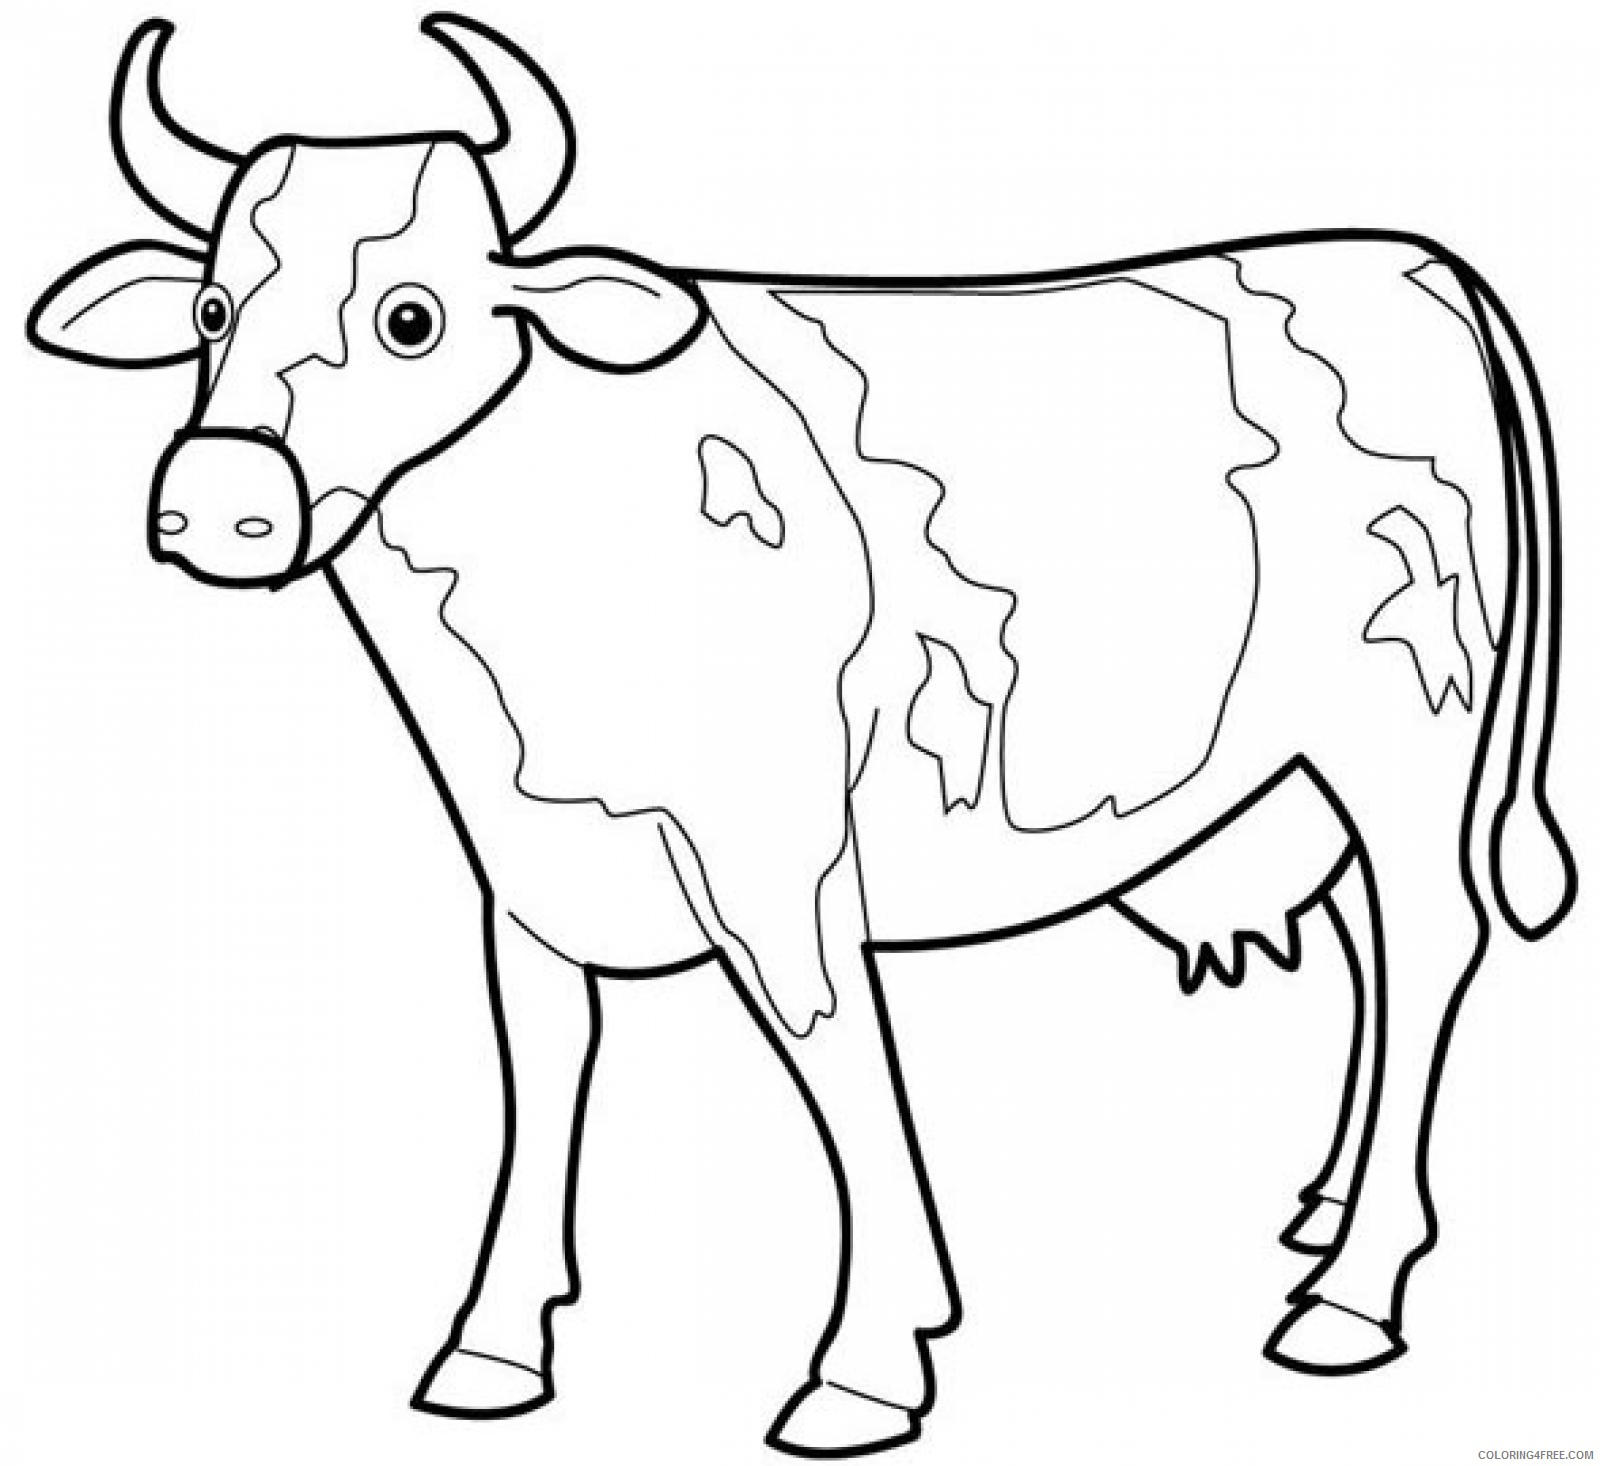 dairy cow coloring pages Coloring4free